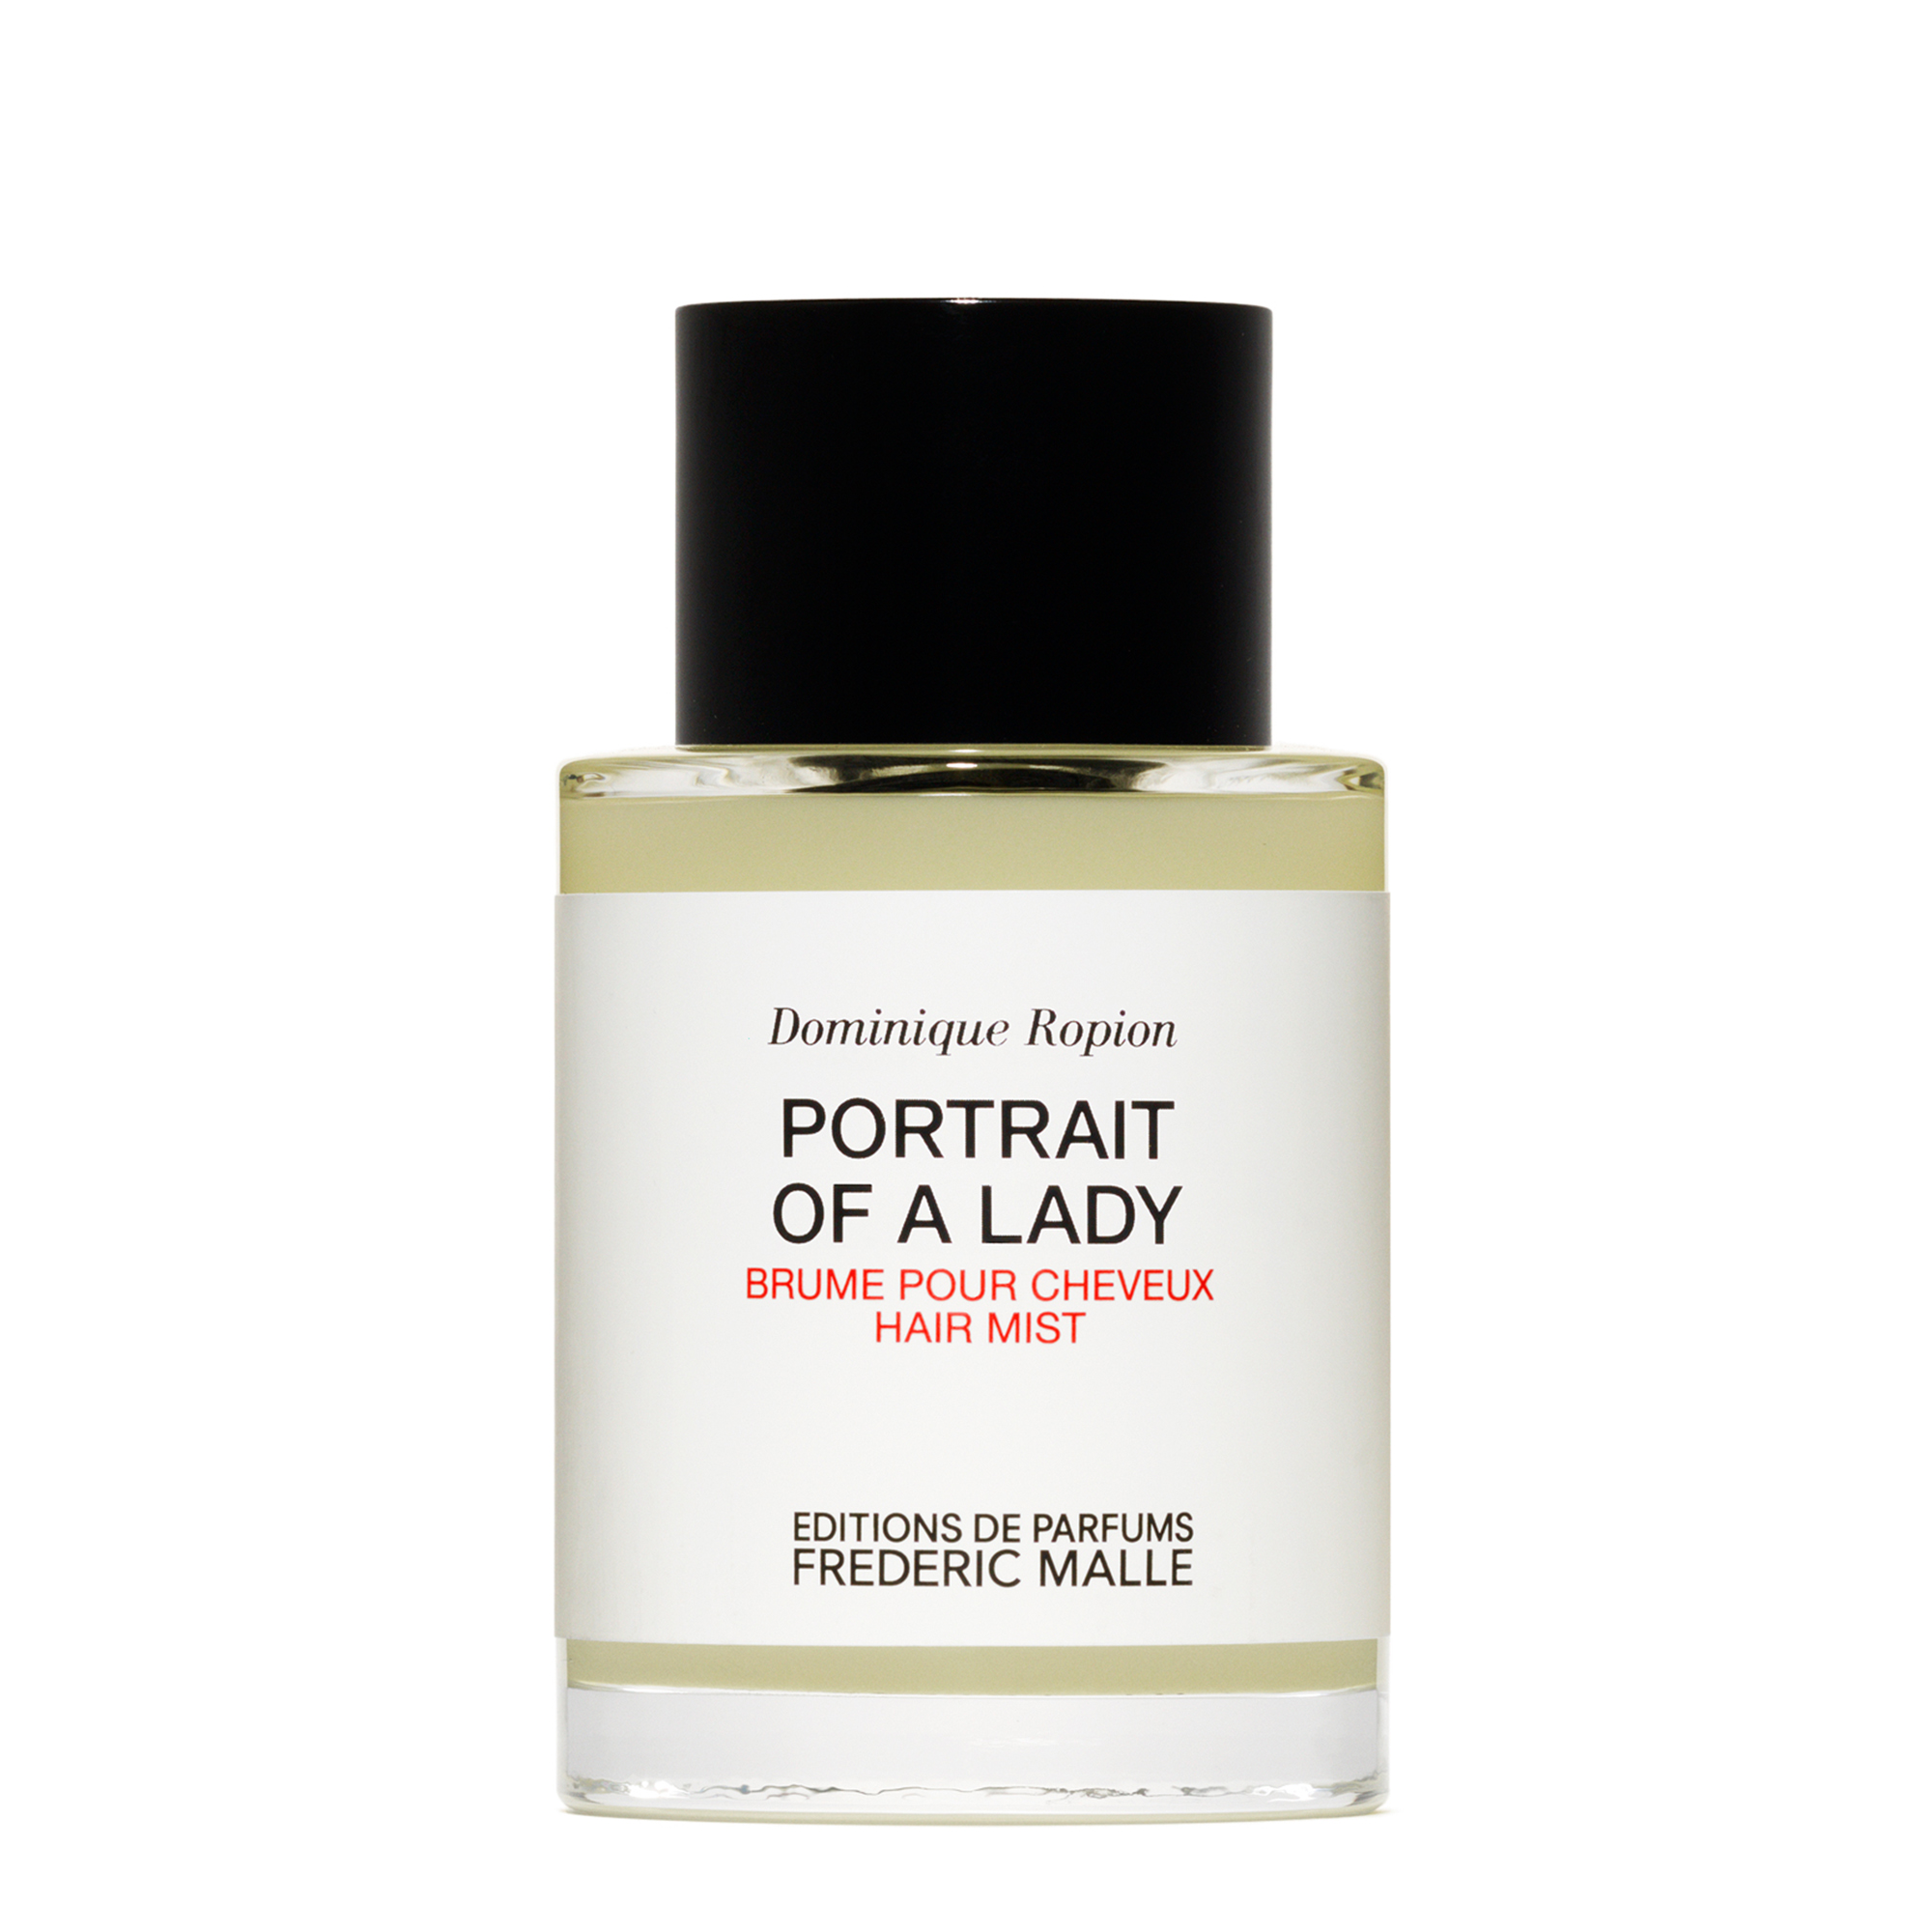 3-fm_portrait-of-a-lady_hairmist_h4j801_2000x2000